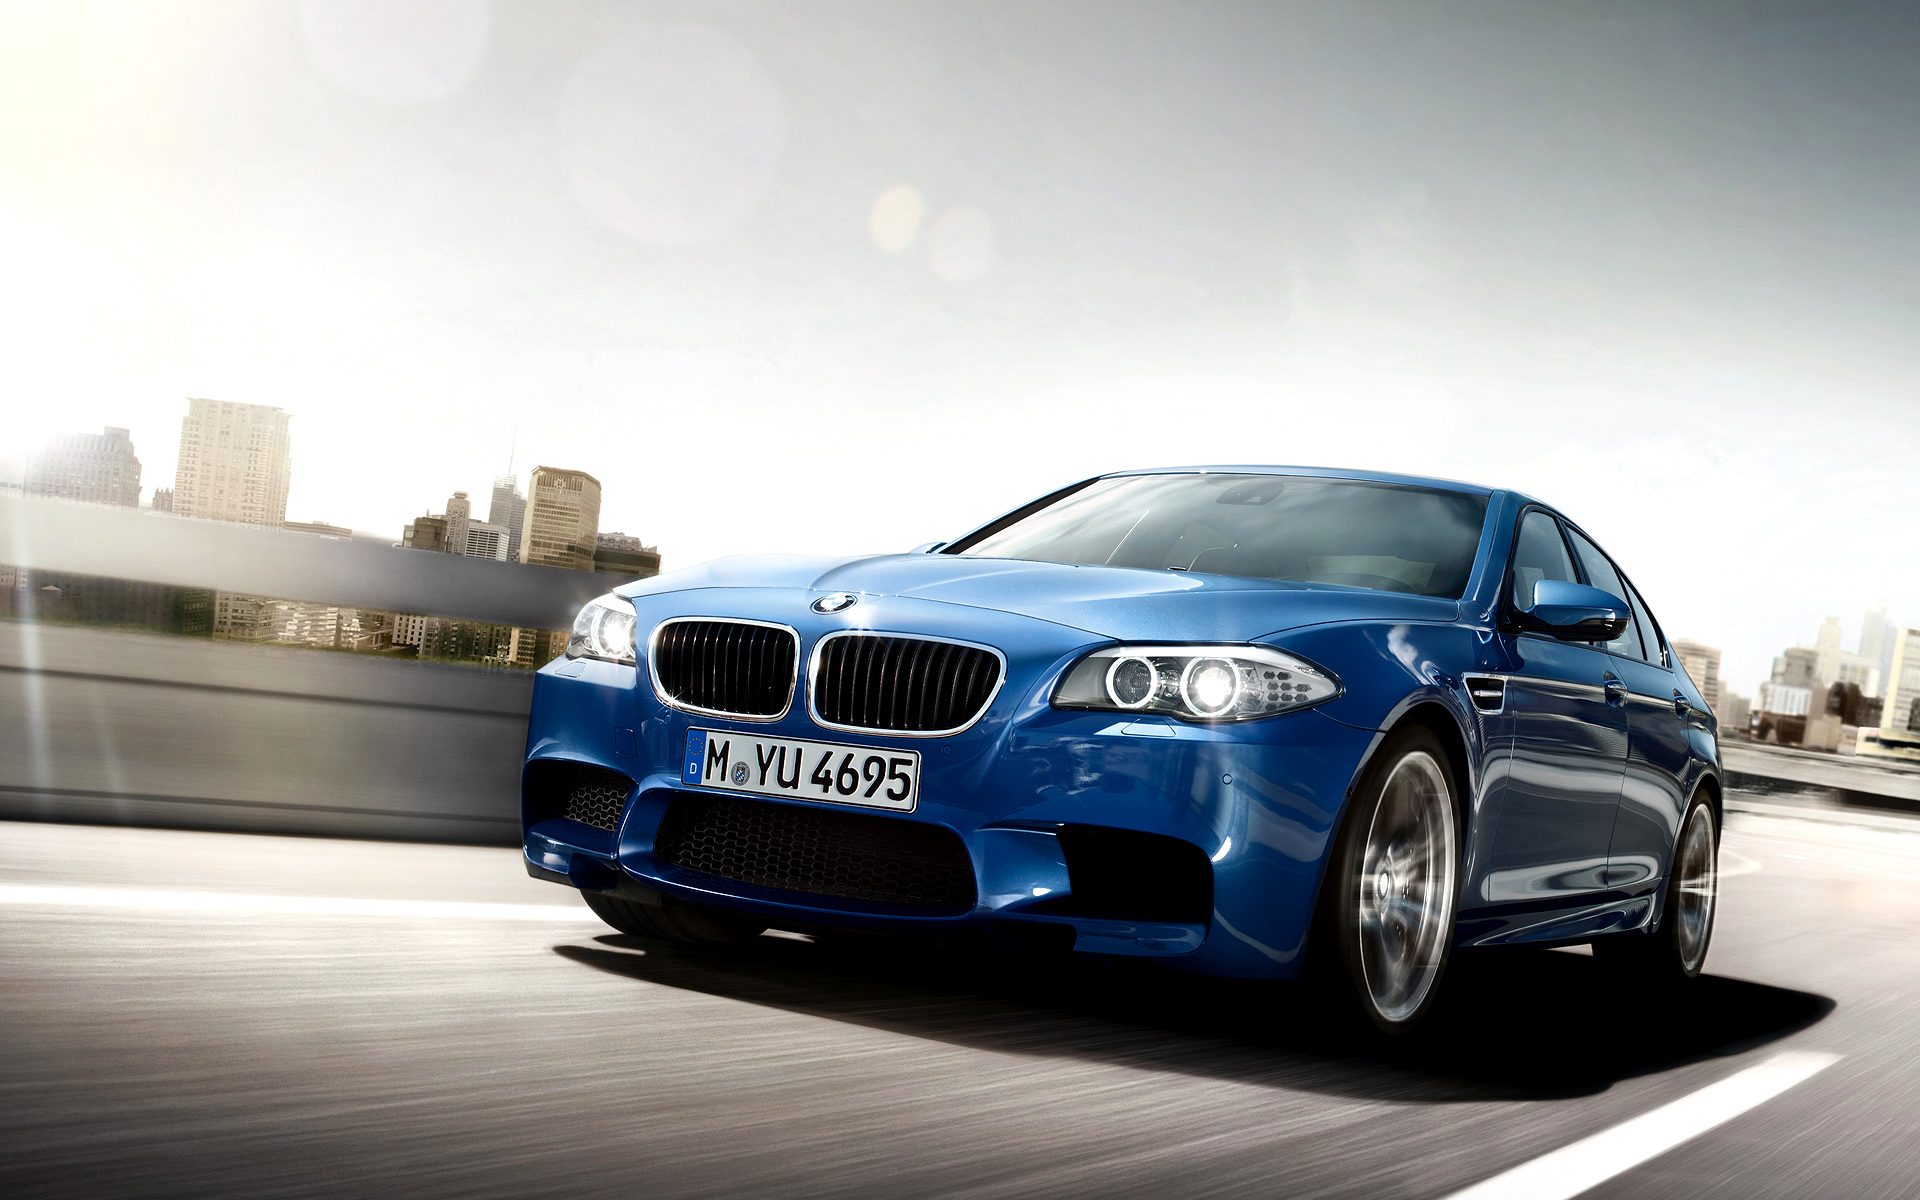 New F10 Bmw M5 High Resolution Wallpapers Forcegt Com